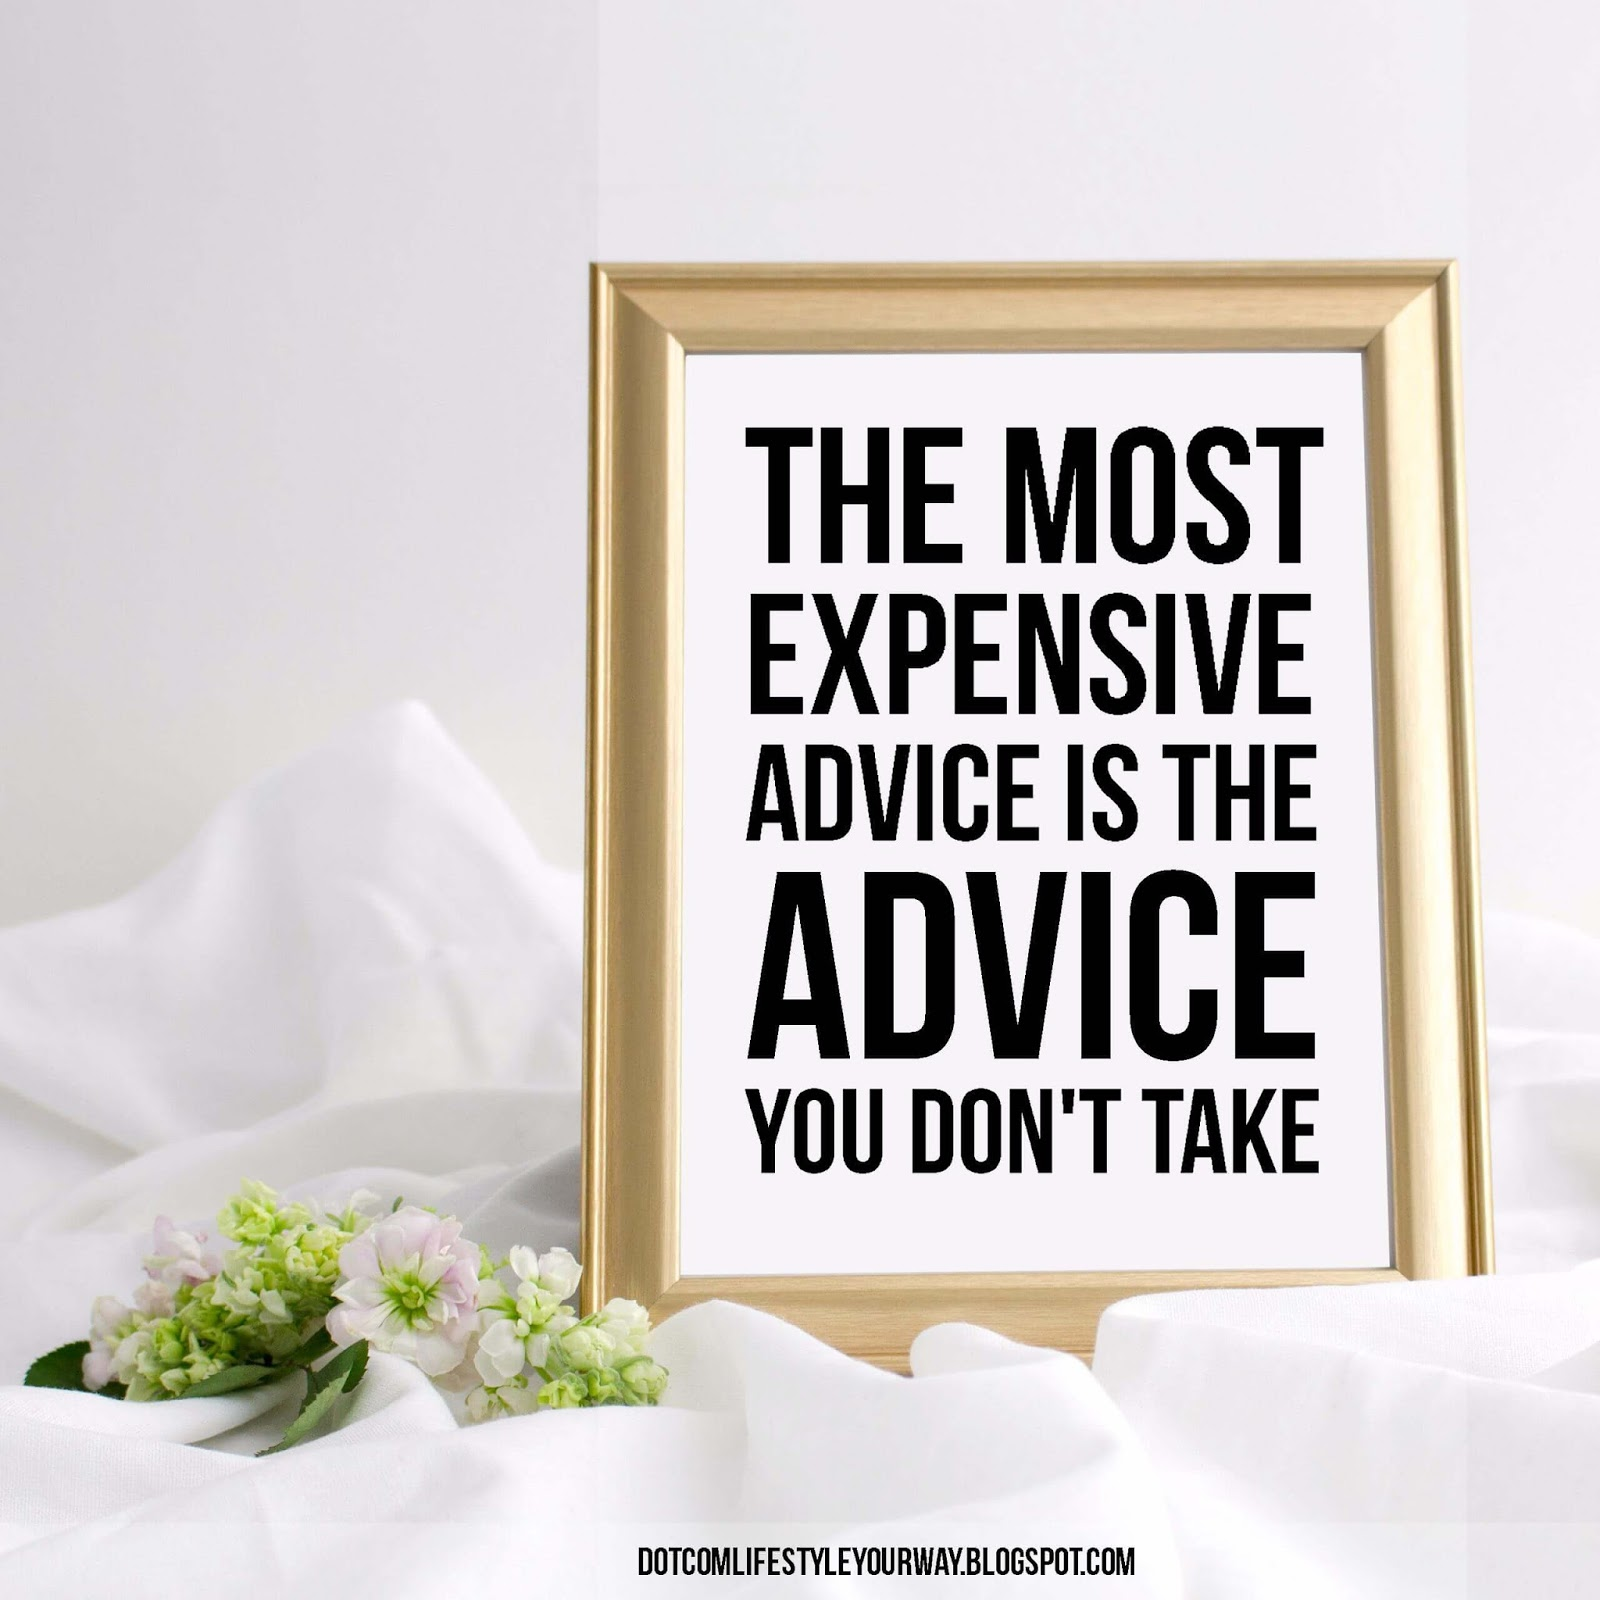 The most expensive advice is often the one we don't take.